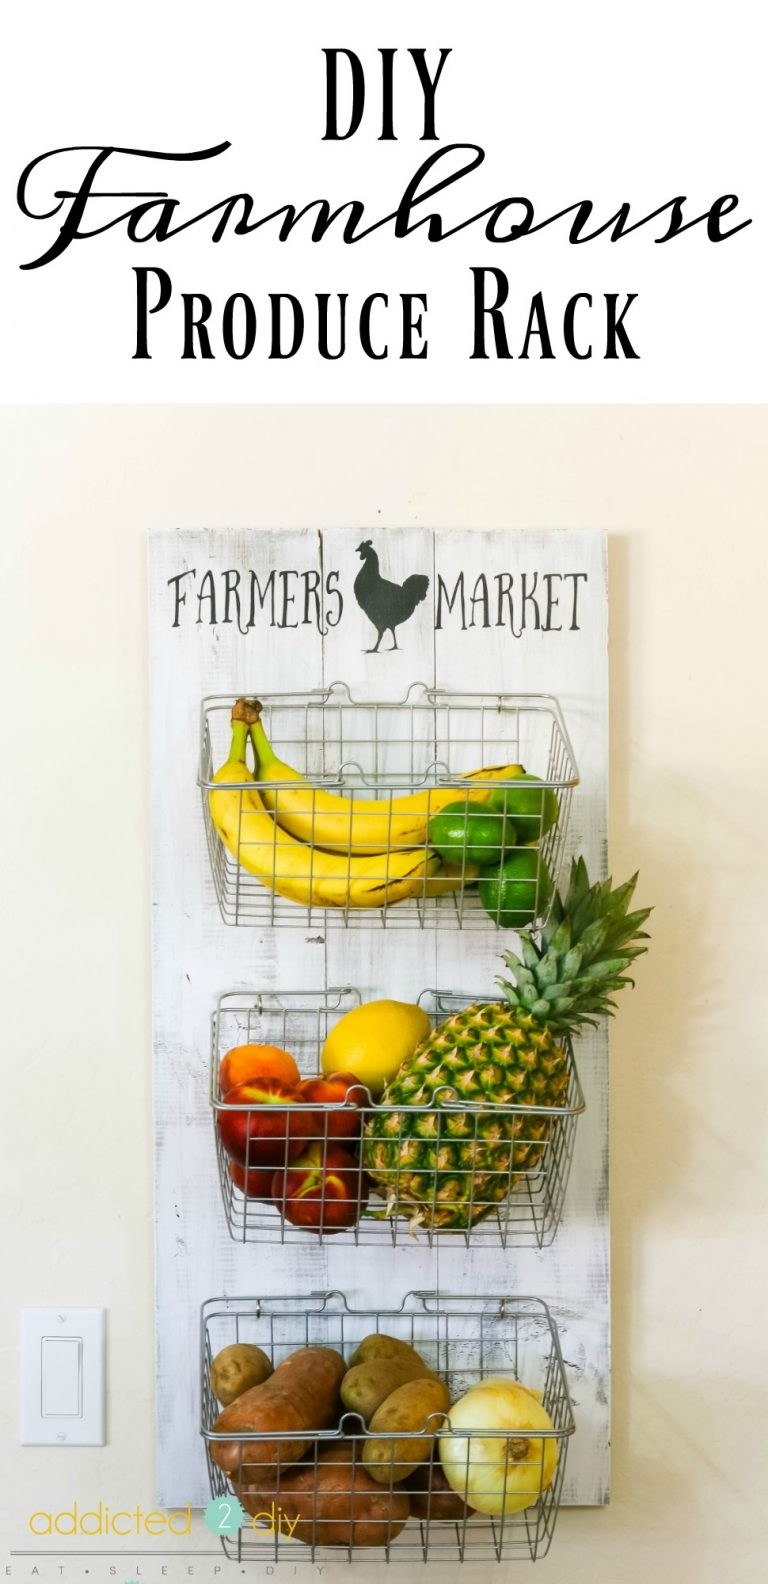 Source: Addicted 2 DIY  https://addicted2diy.com/diy-farmhouse-produce-rack/